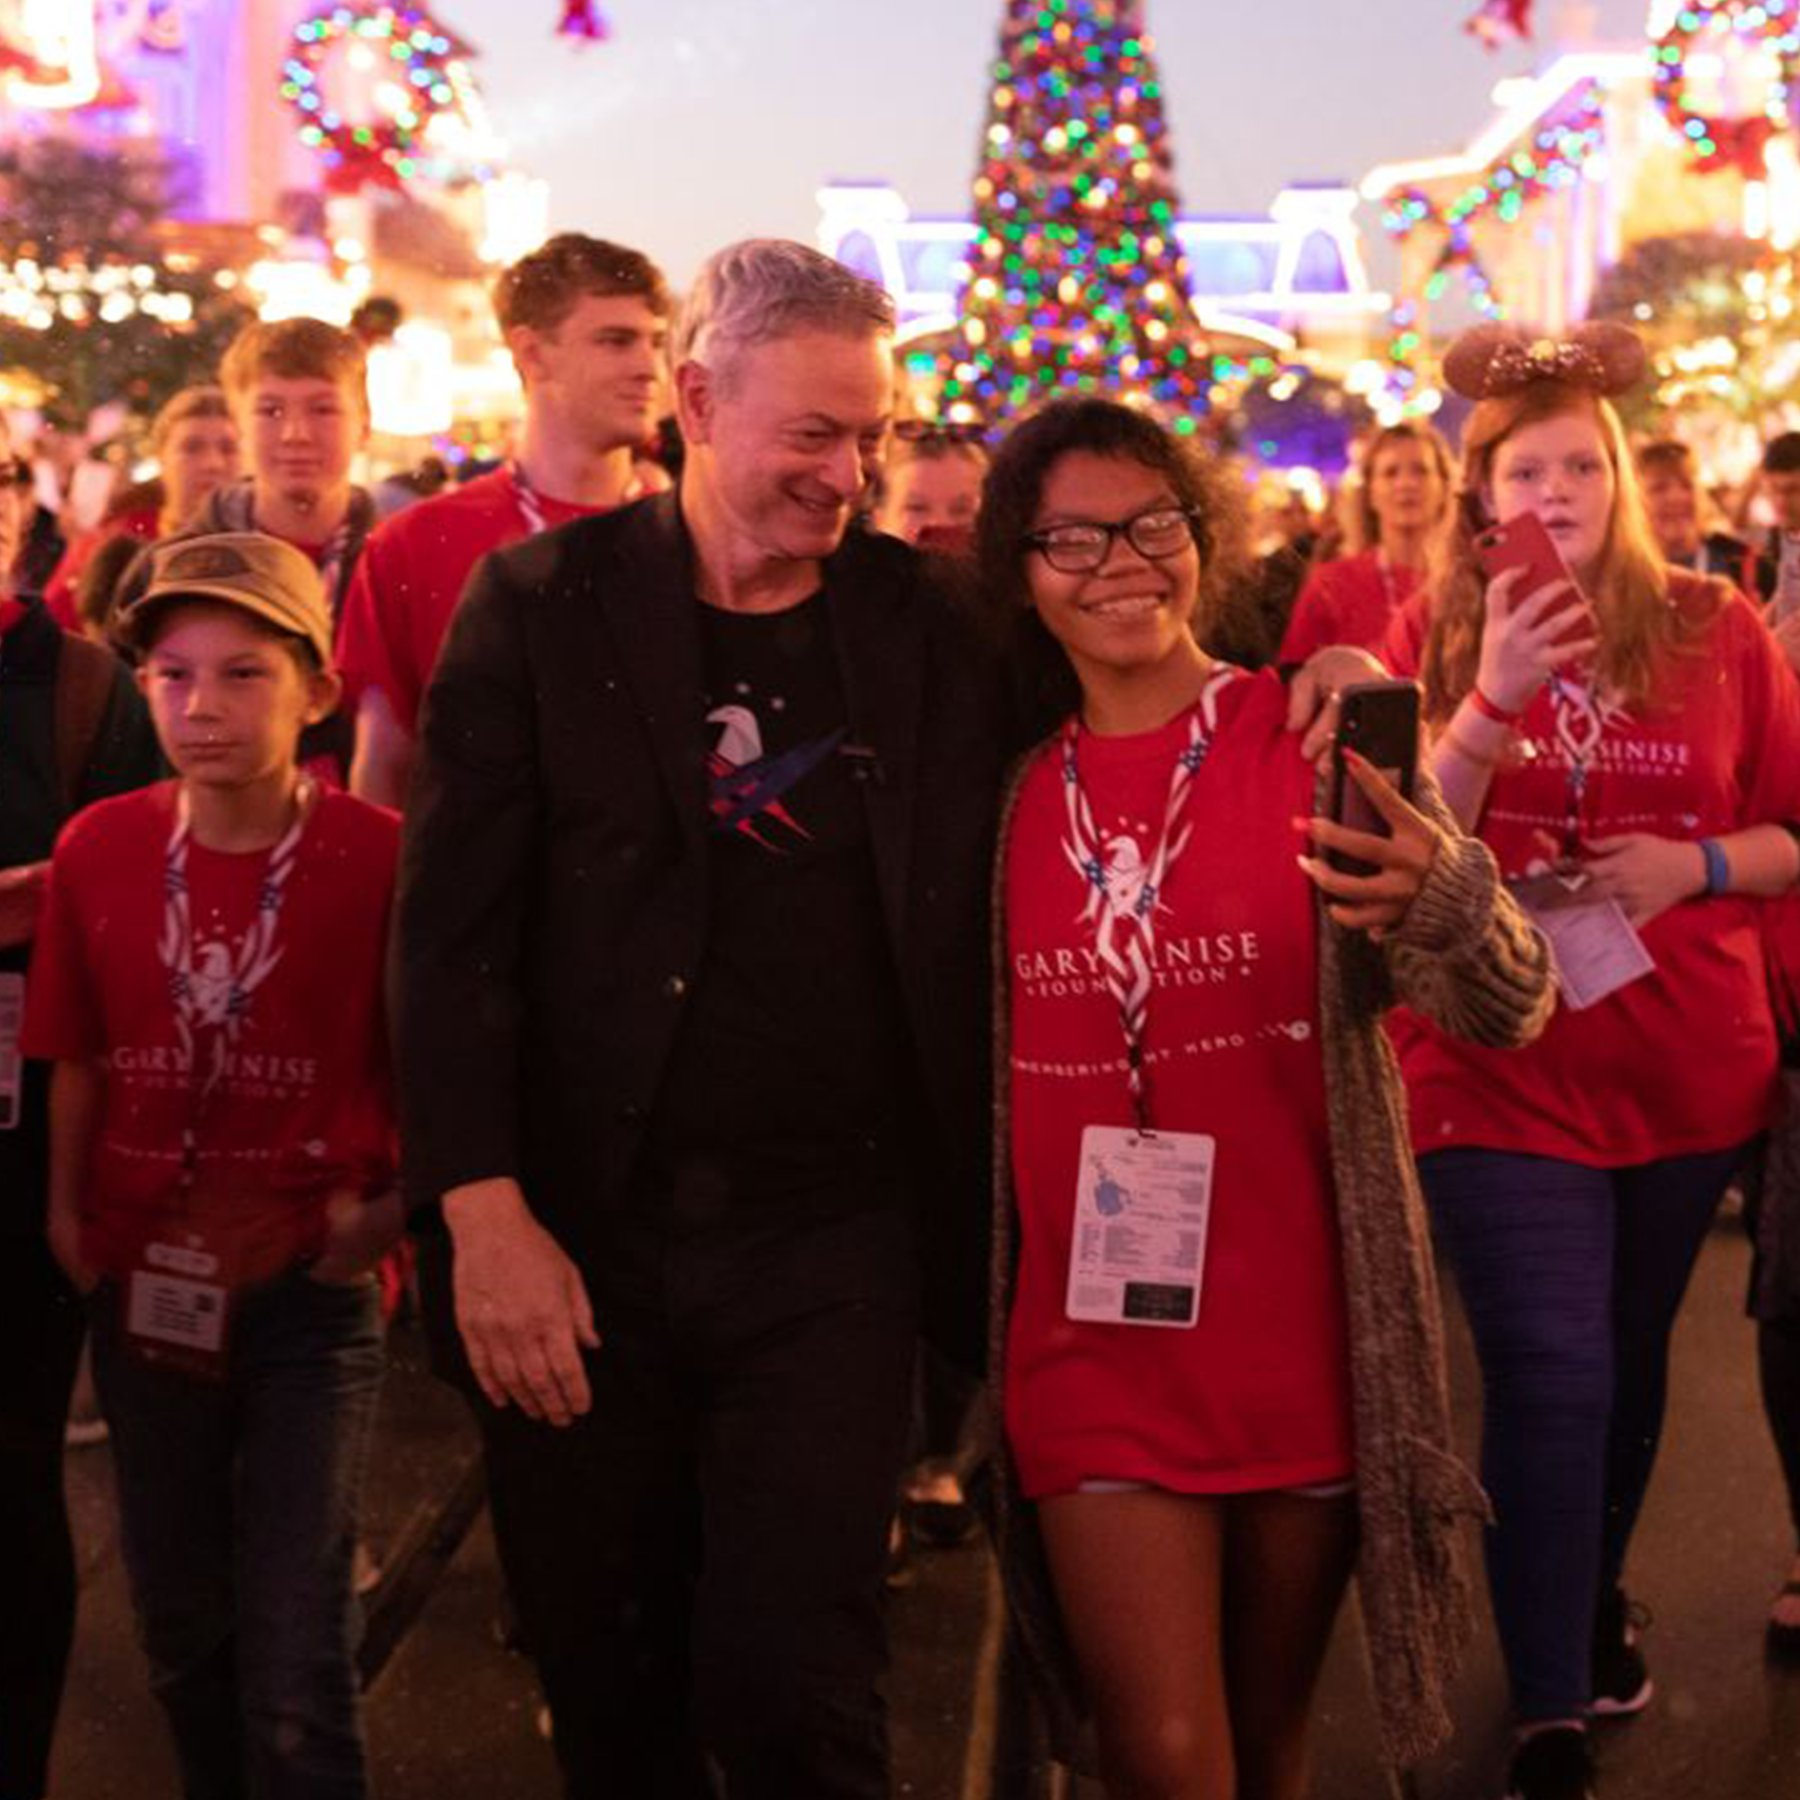 'Forest Gump' Actor Gary Sinise Treats 1,000 Gold Star Children to Free Disney World Vacation